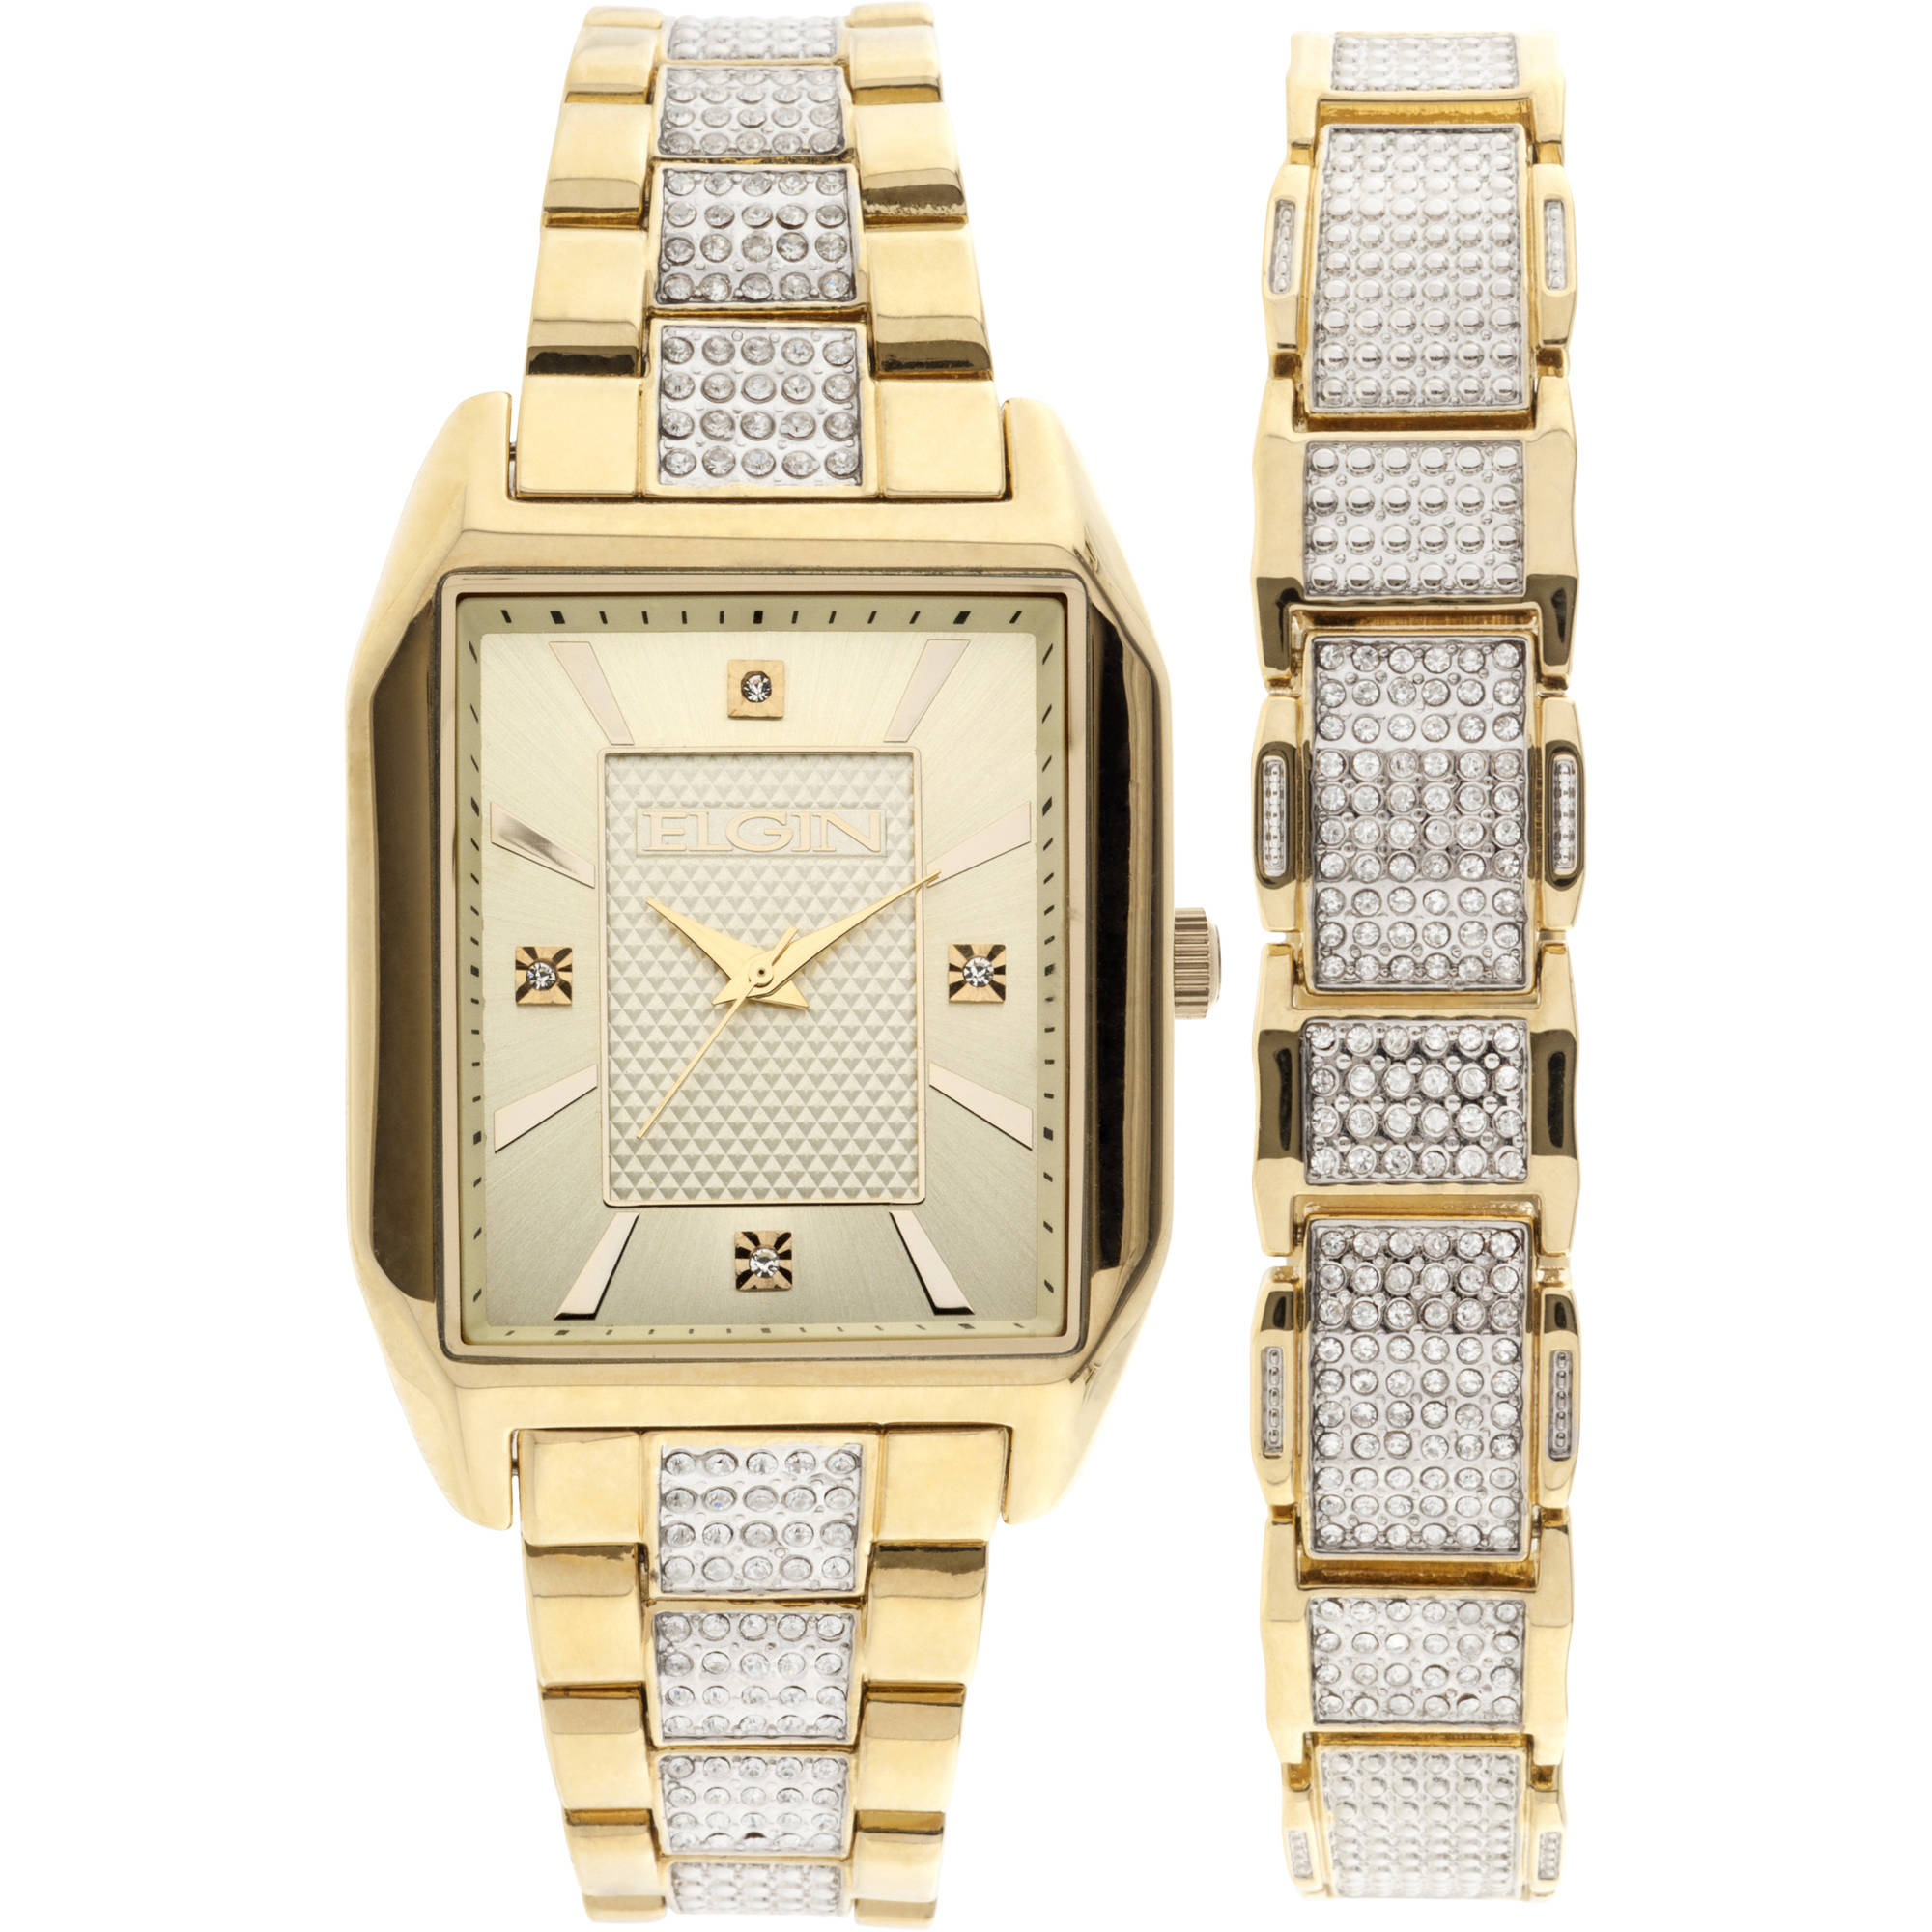 watch watches com armani rsp at online strap buyarmani women bracelet crystal rose main johnlewis gold pdp exchange s